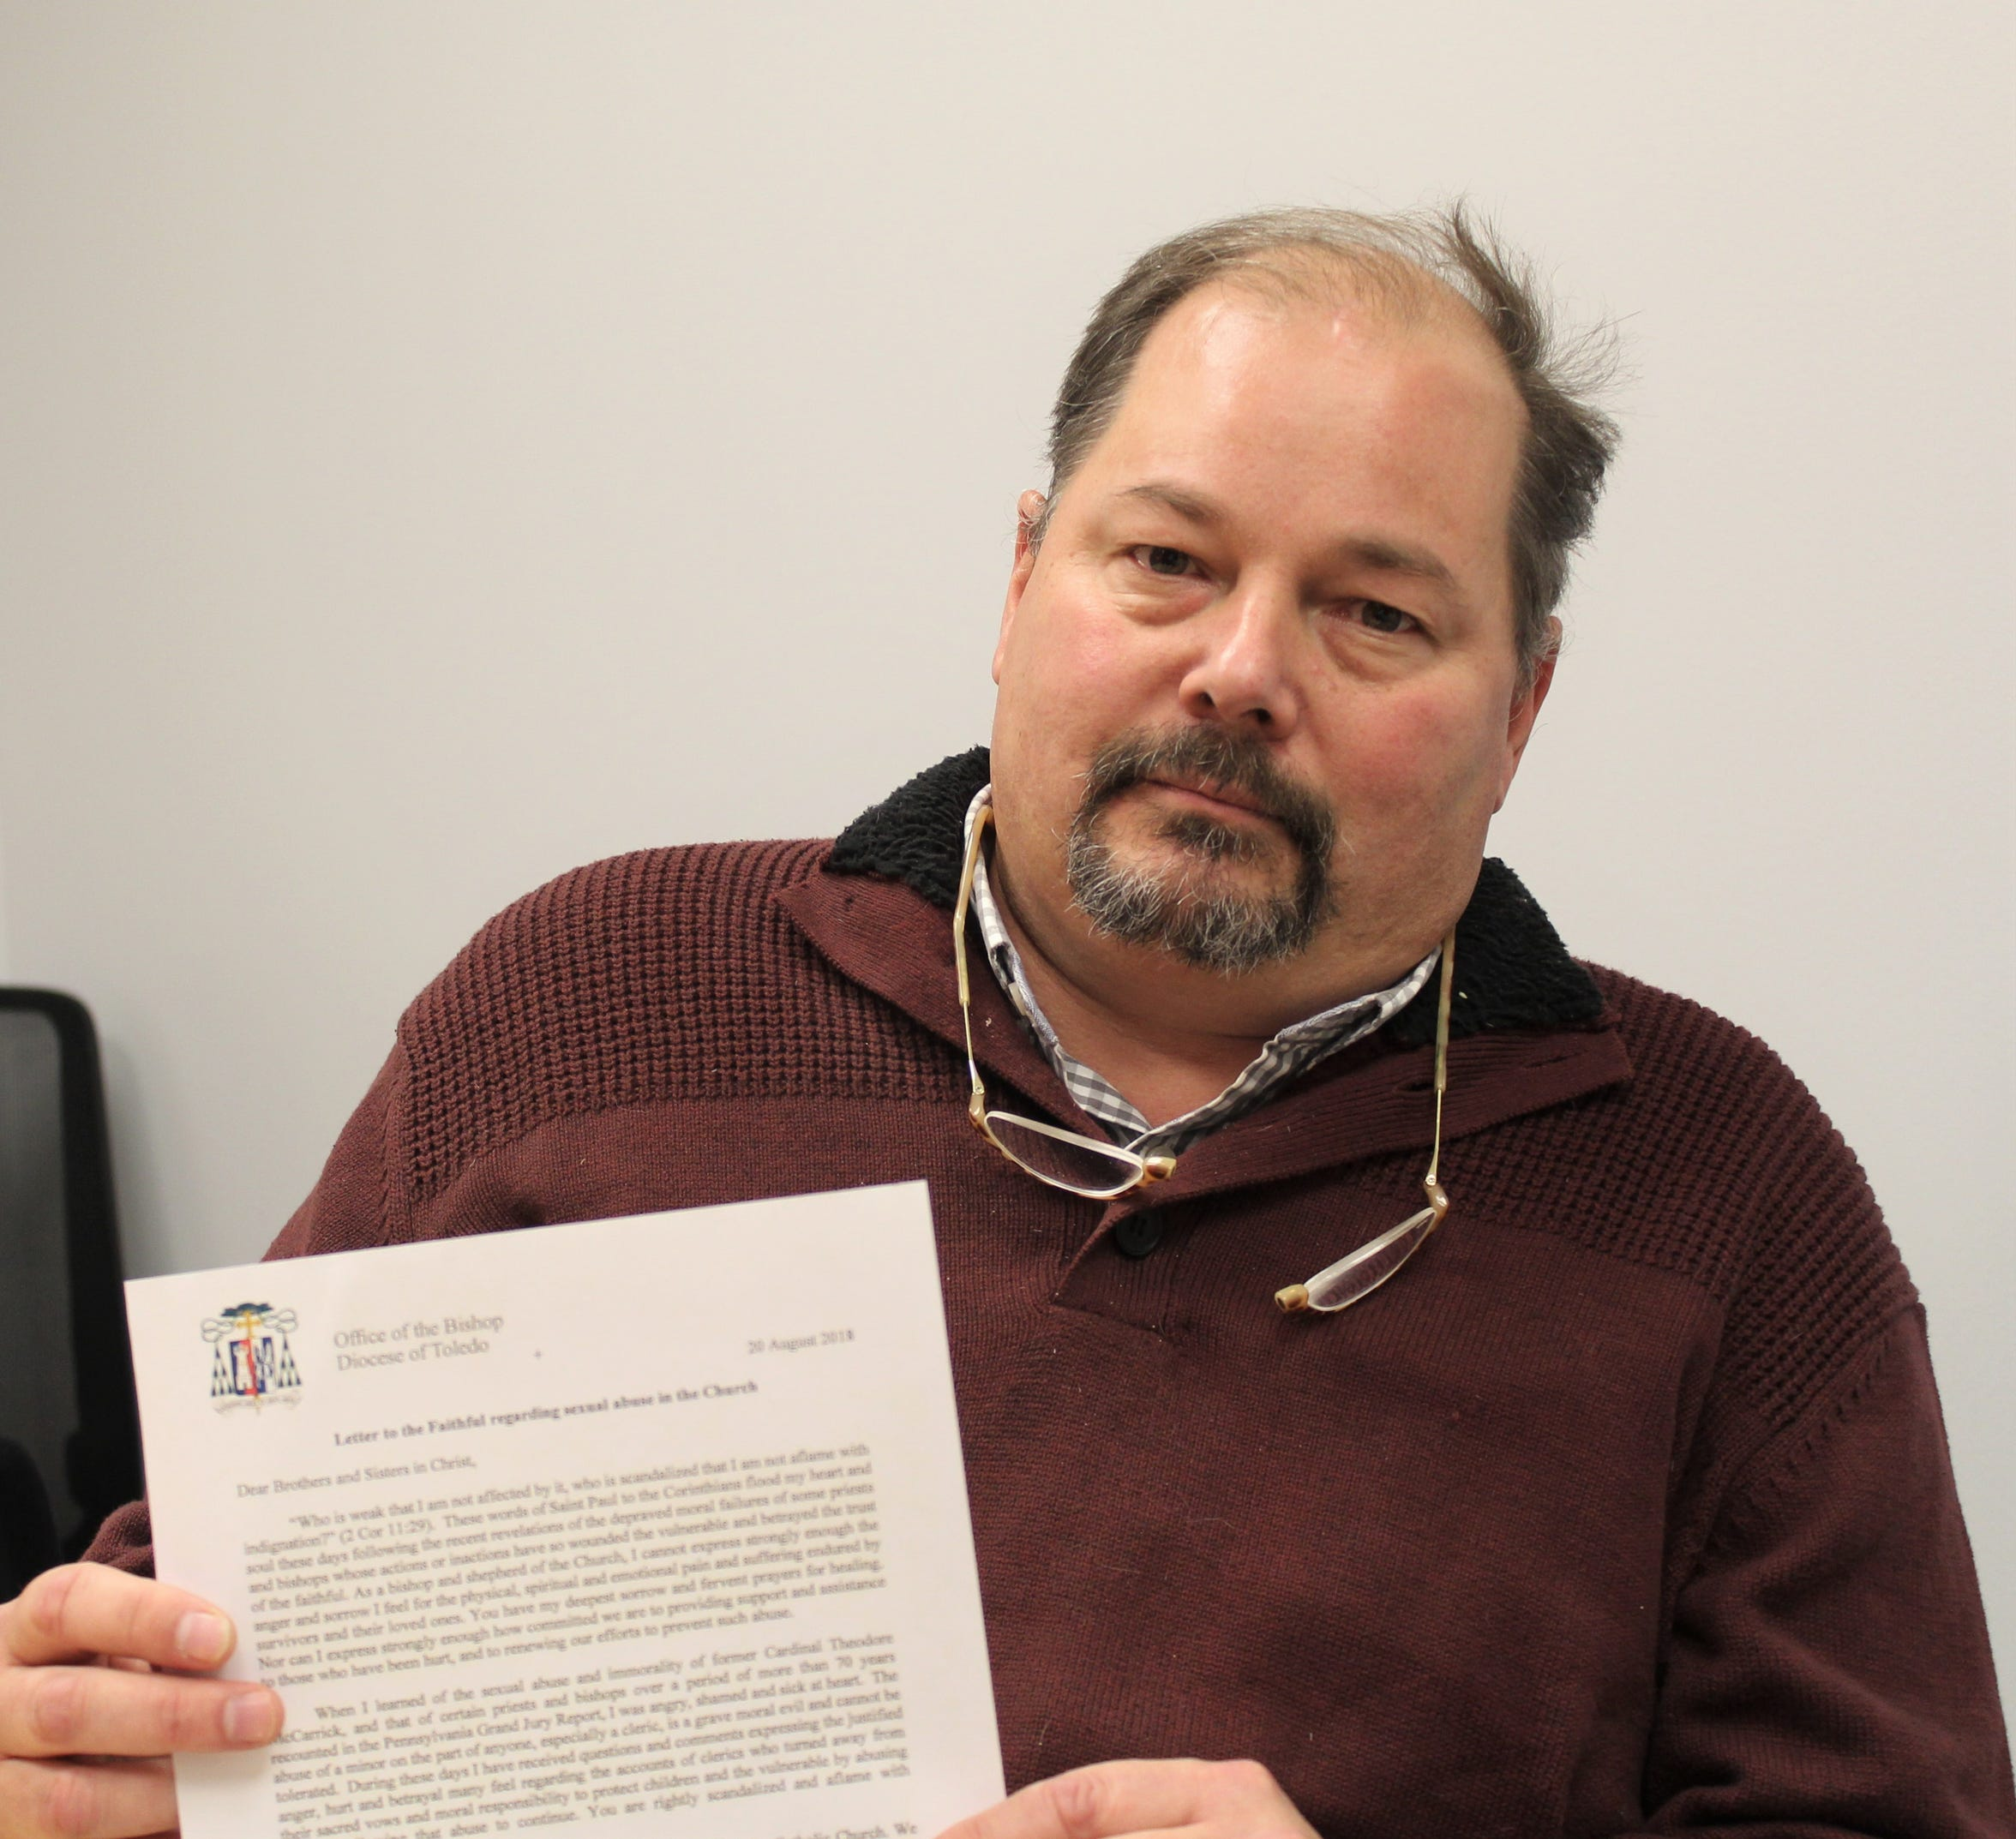 """Riley Kinn of Fostoria holds a """"letter to the faithful"""" from Toledo Bishop Daniel Thomas. Kinn has been requesting a meeting with the Catholic bishop to discuss allegations of sexual abuse by a Toledo priest when he was 13."""